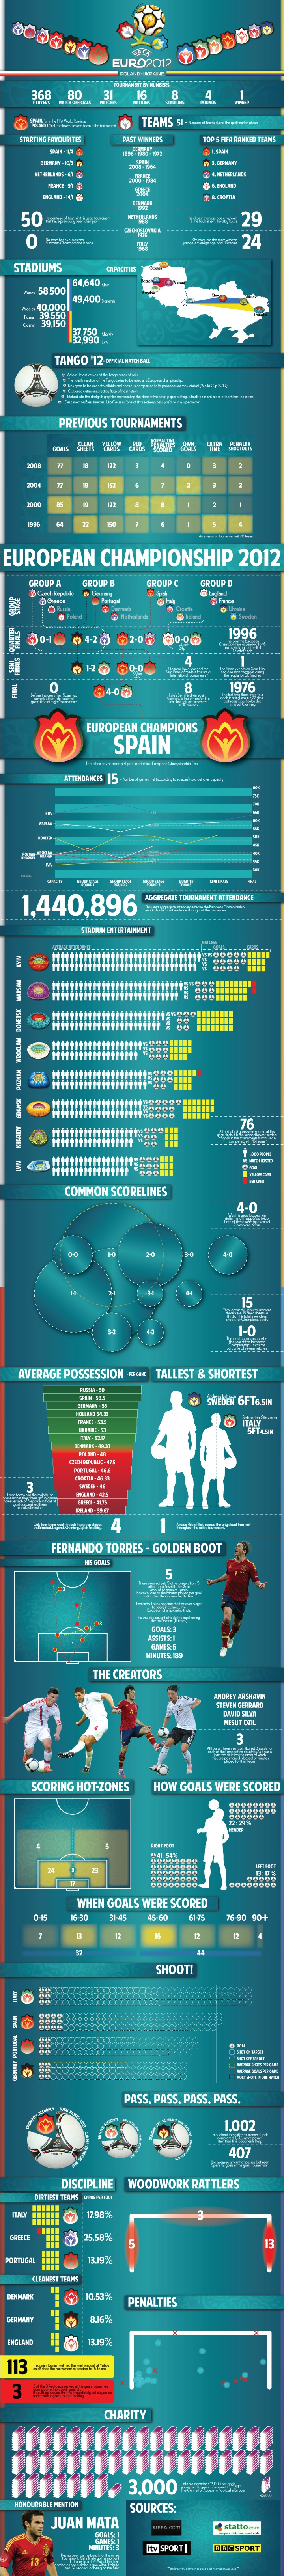 Euro 2012 in stats. great stuff